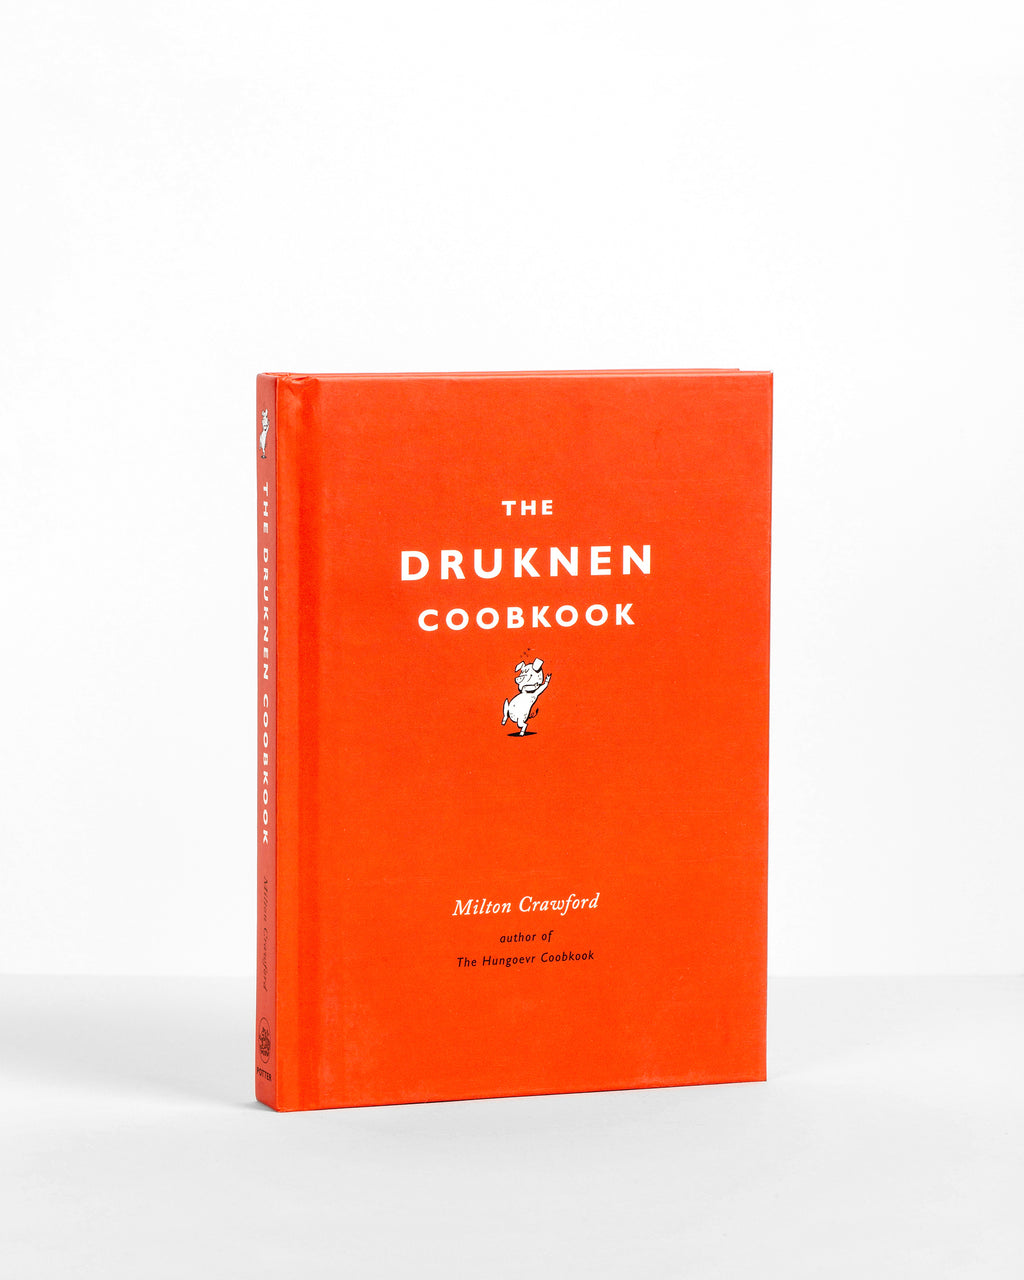 The Druknen Coobkook